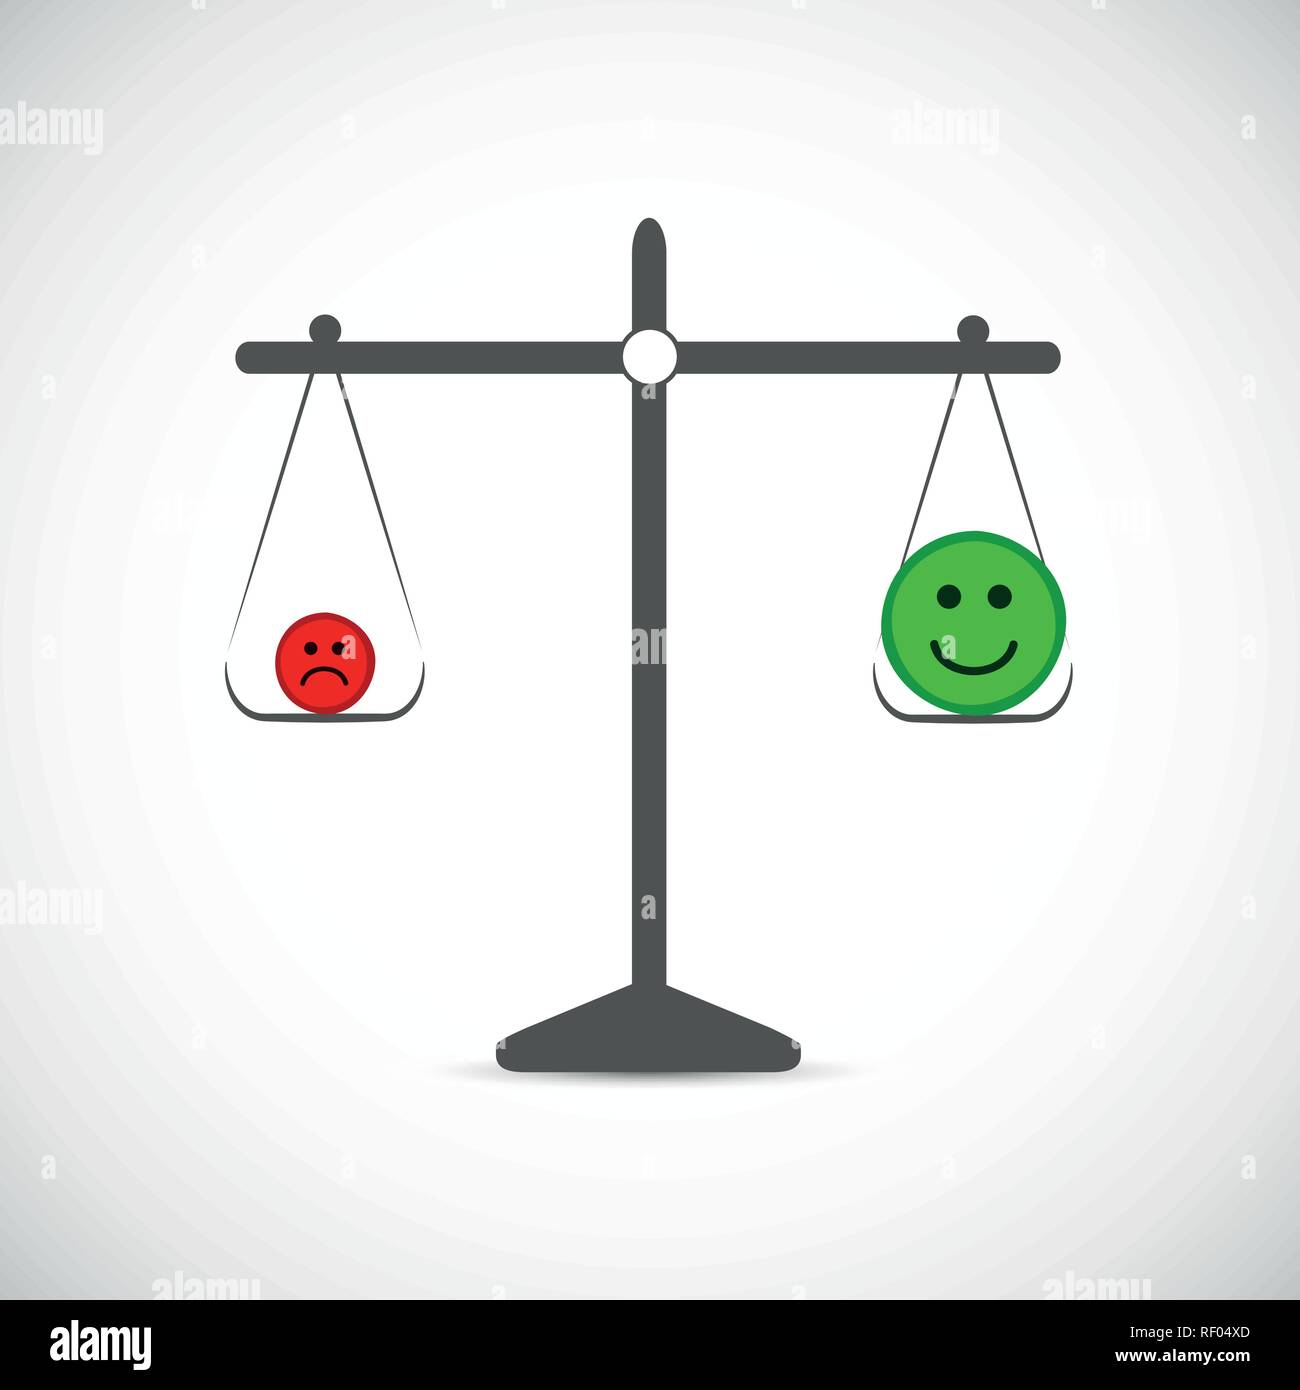 more positive thinking in a libra vector illustration EPS10 - Stock Vector